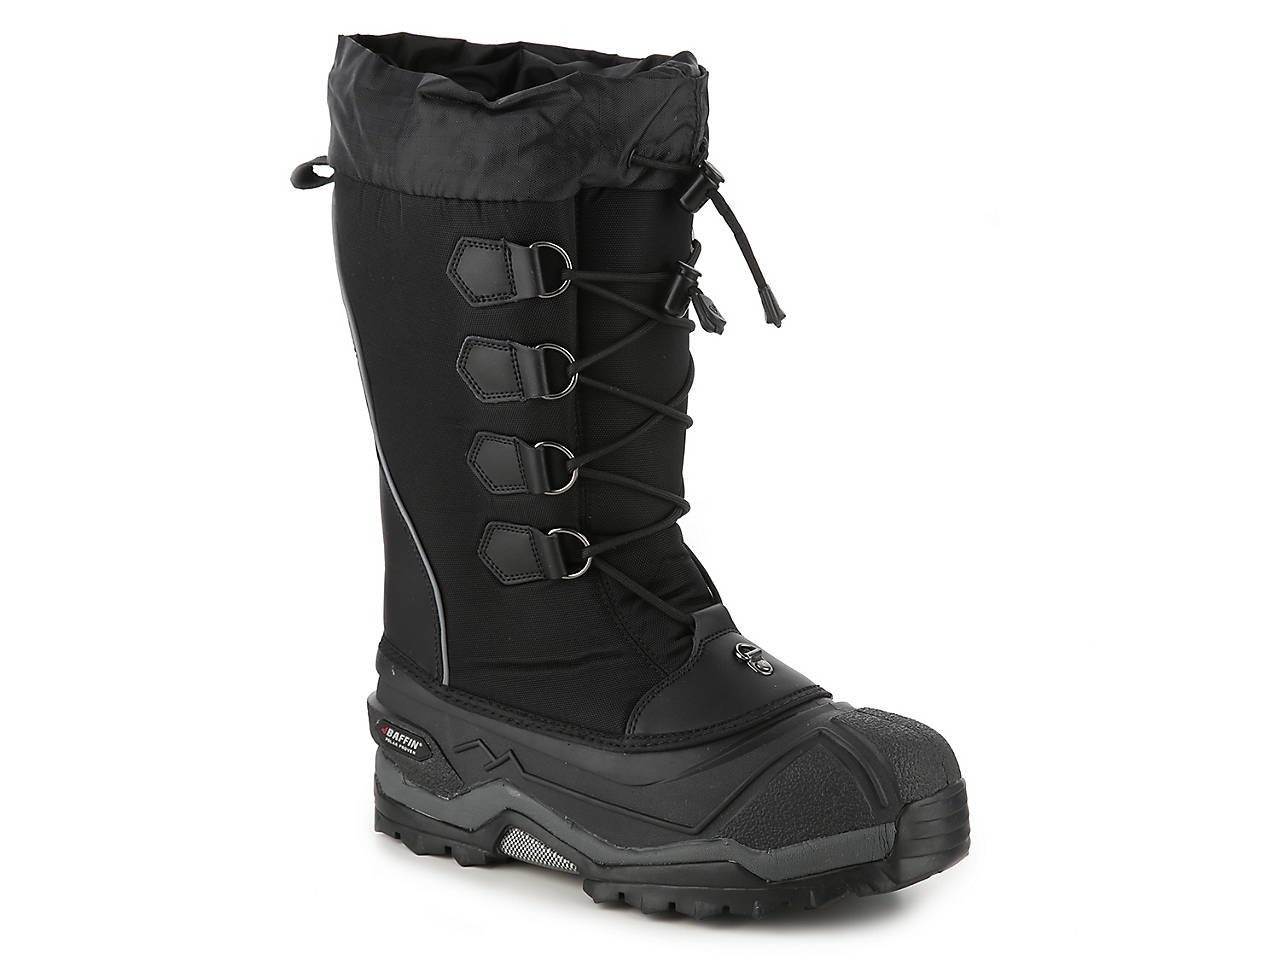 b9034f2c53 Baffin Icebreaker Snow Boot Men's Shoes | DSW